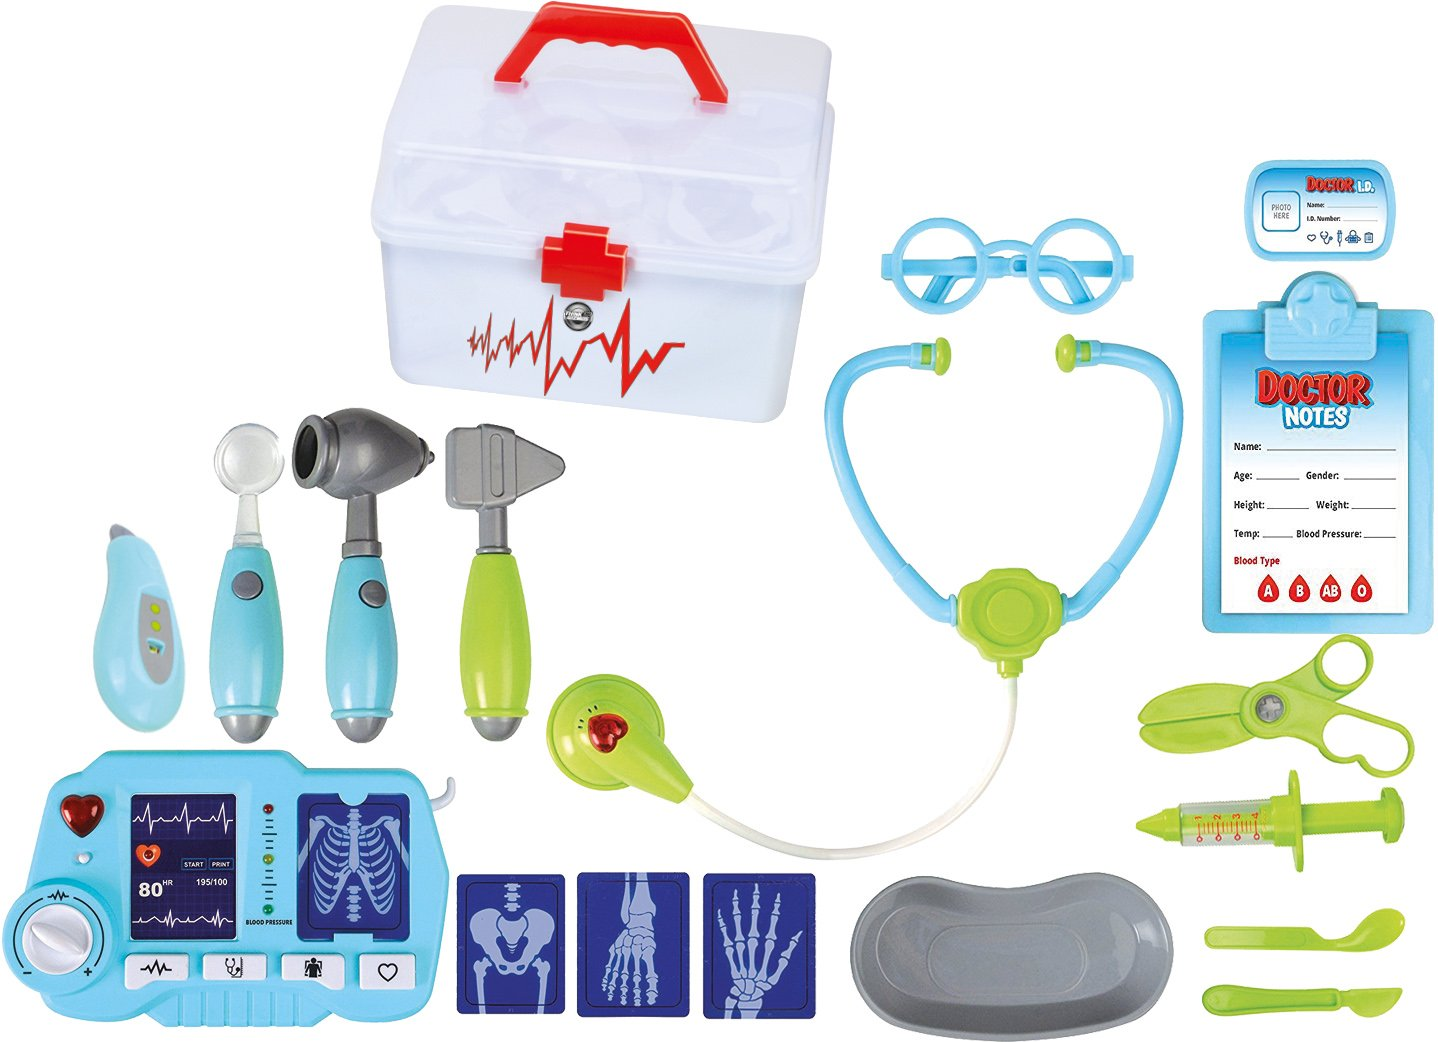 Doctors Toy Set For Kids TG663 - Fun Doctors Kit For Toddlers Boys & Girls with 18 pieces including X-Ray Machine - Pretend Medical Play Set By ThinkGizmos (Trademark Protected)   B075XSLJNJ